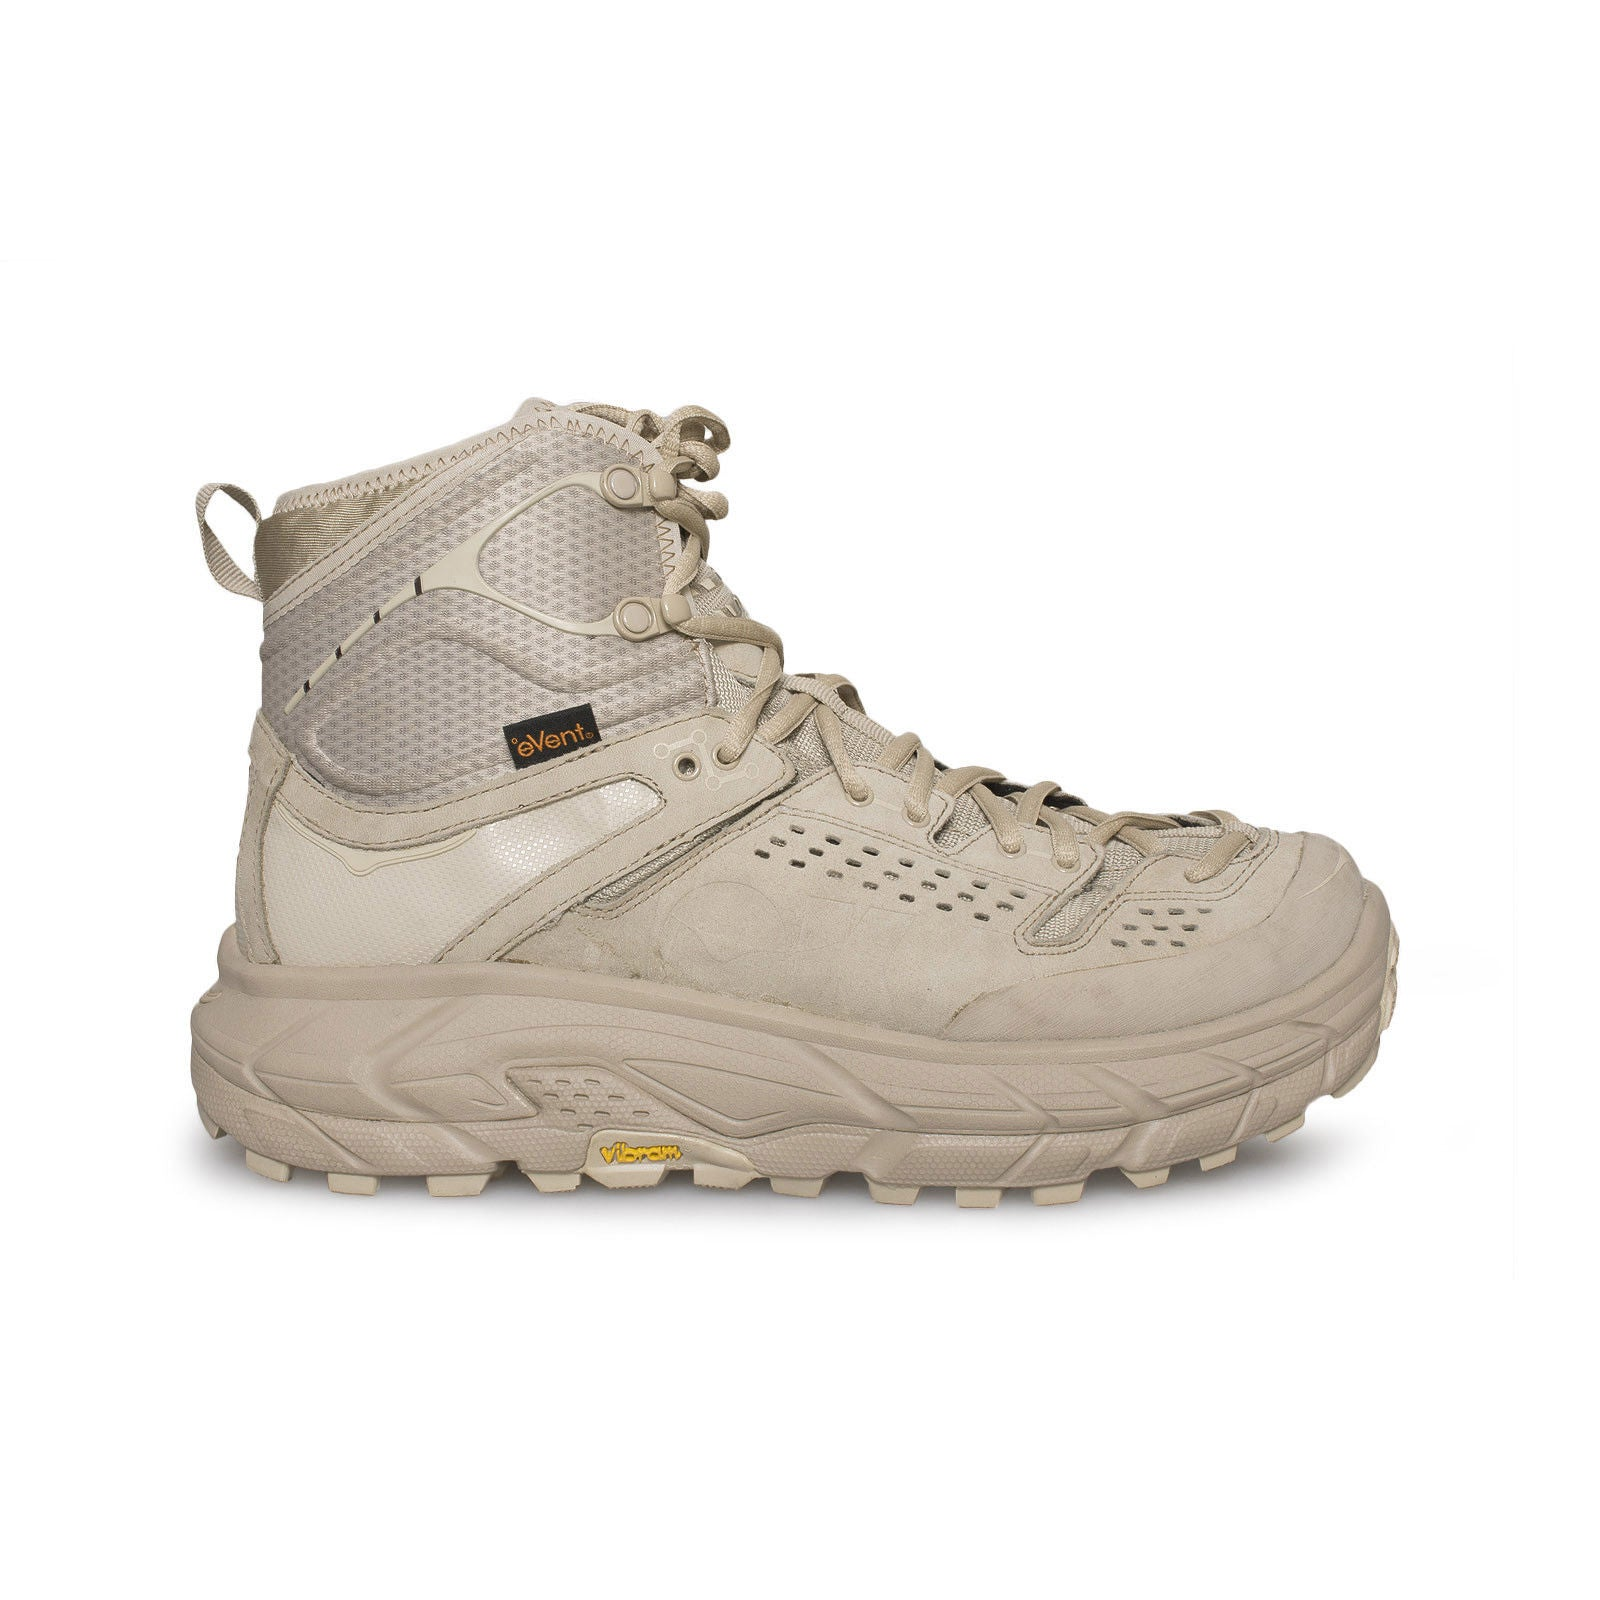 buy online 6f912 afd76 Hoka One One Tor Ultra Hi WP Oxford Tan Hiking Boots